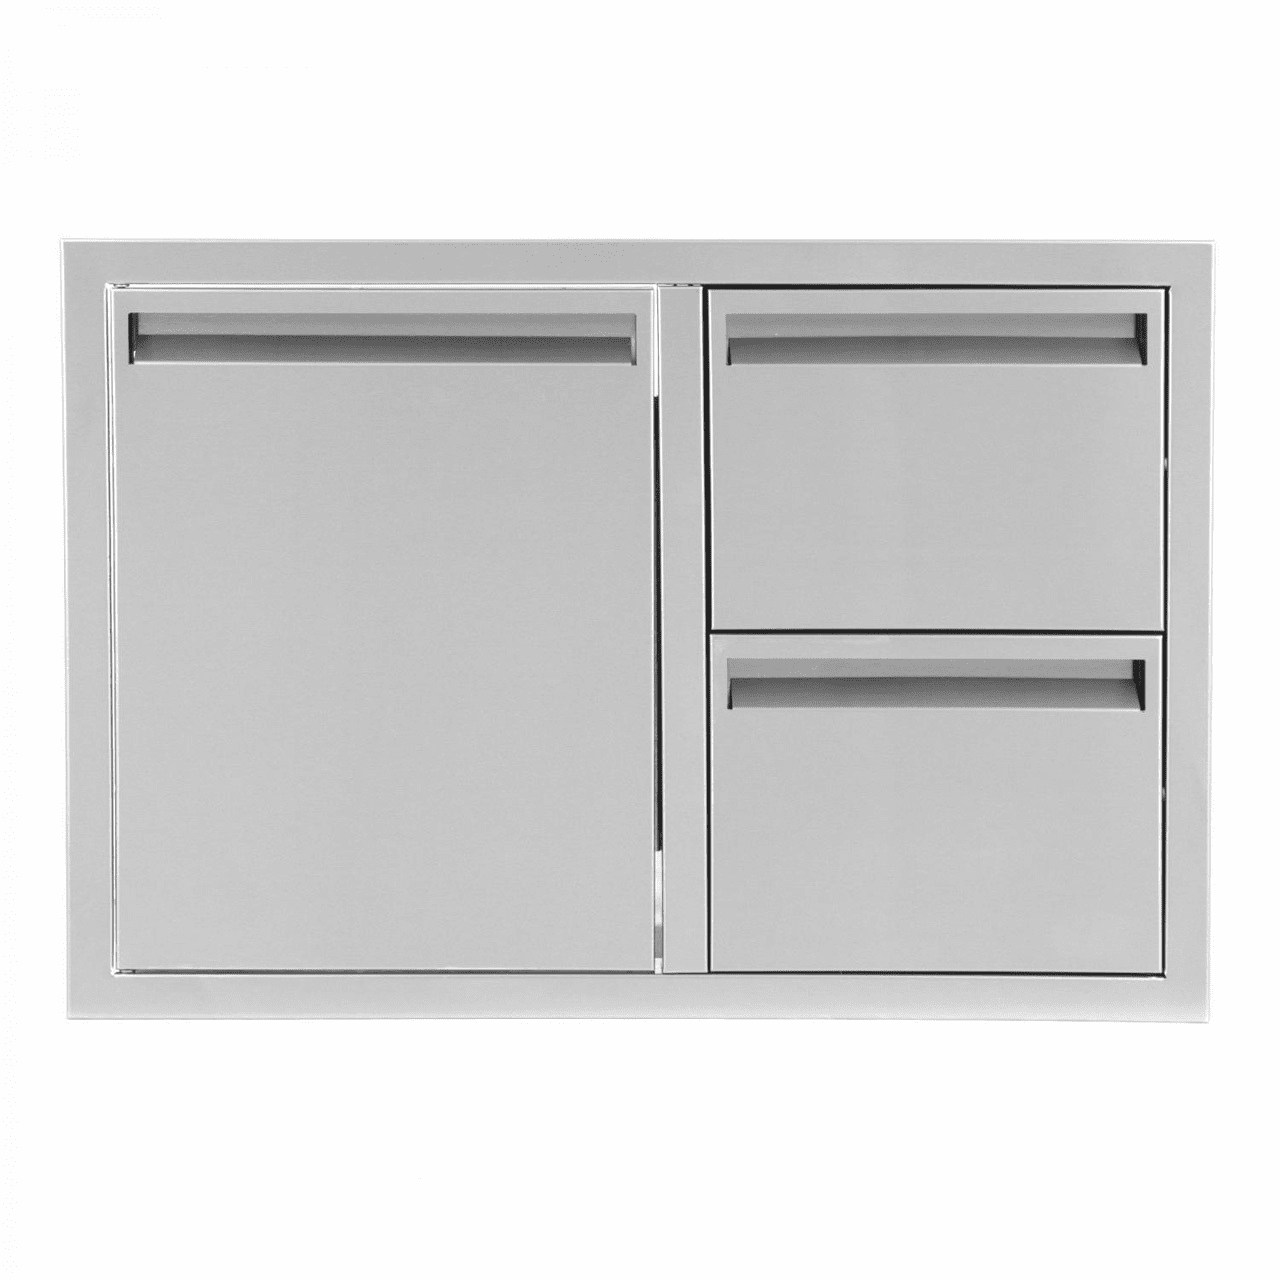 PCM 301 Series 2 Drawer 1 Door Combo PCM-350-Combo30